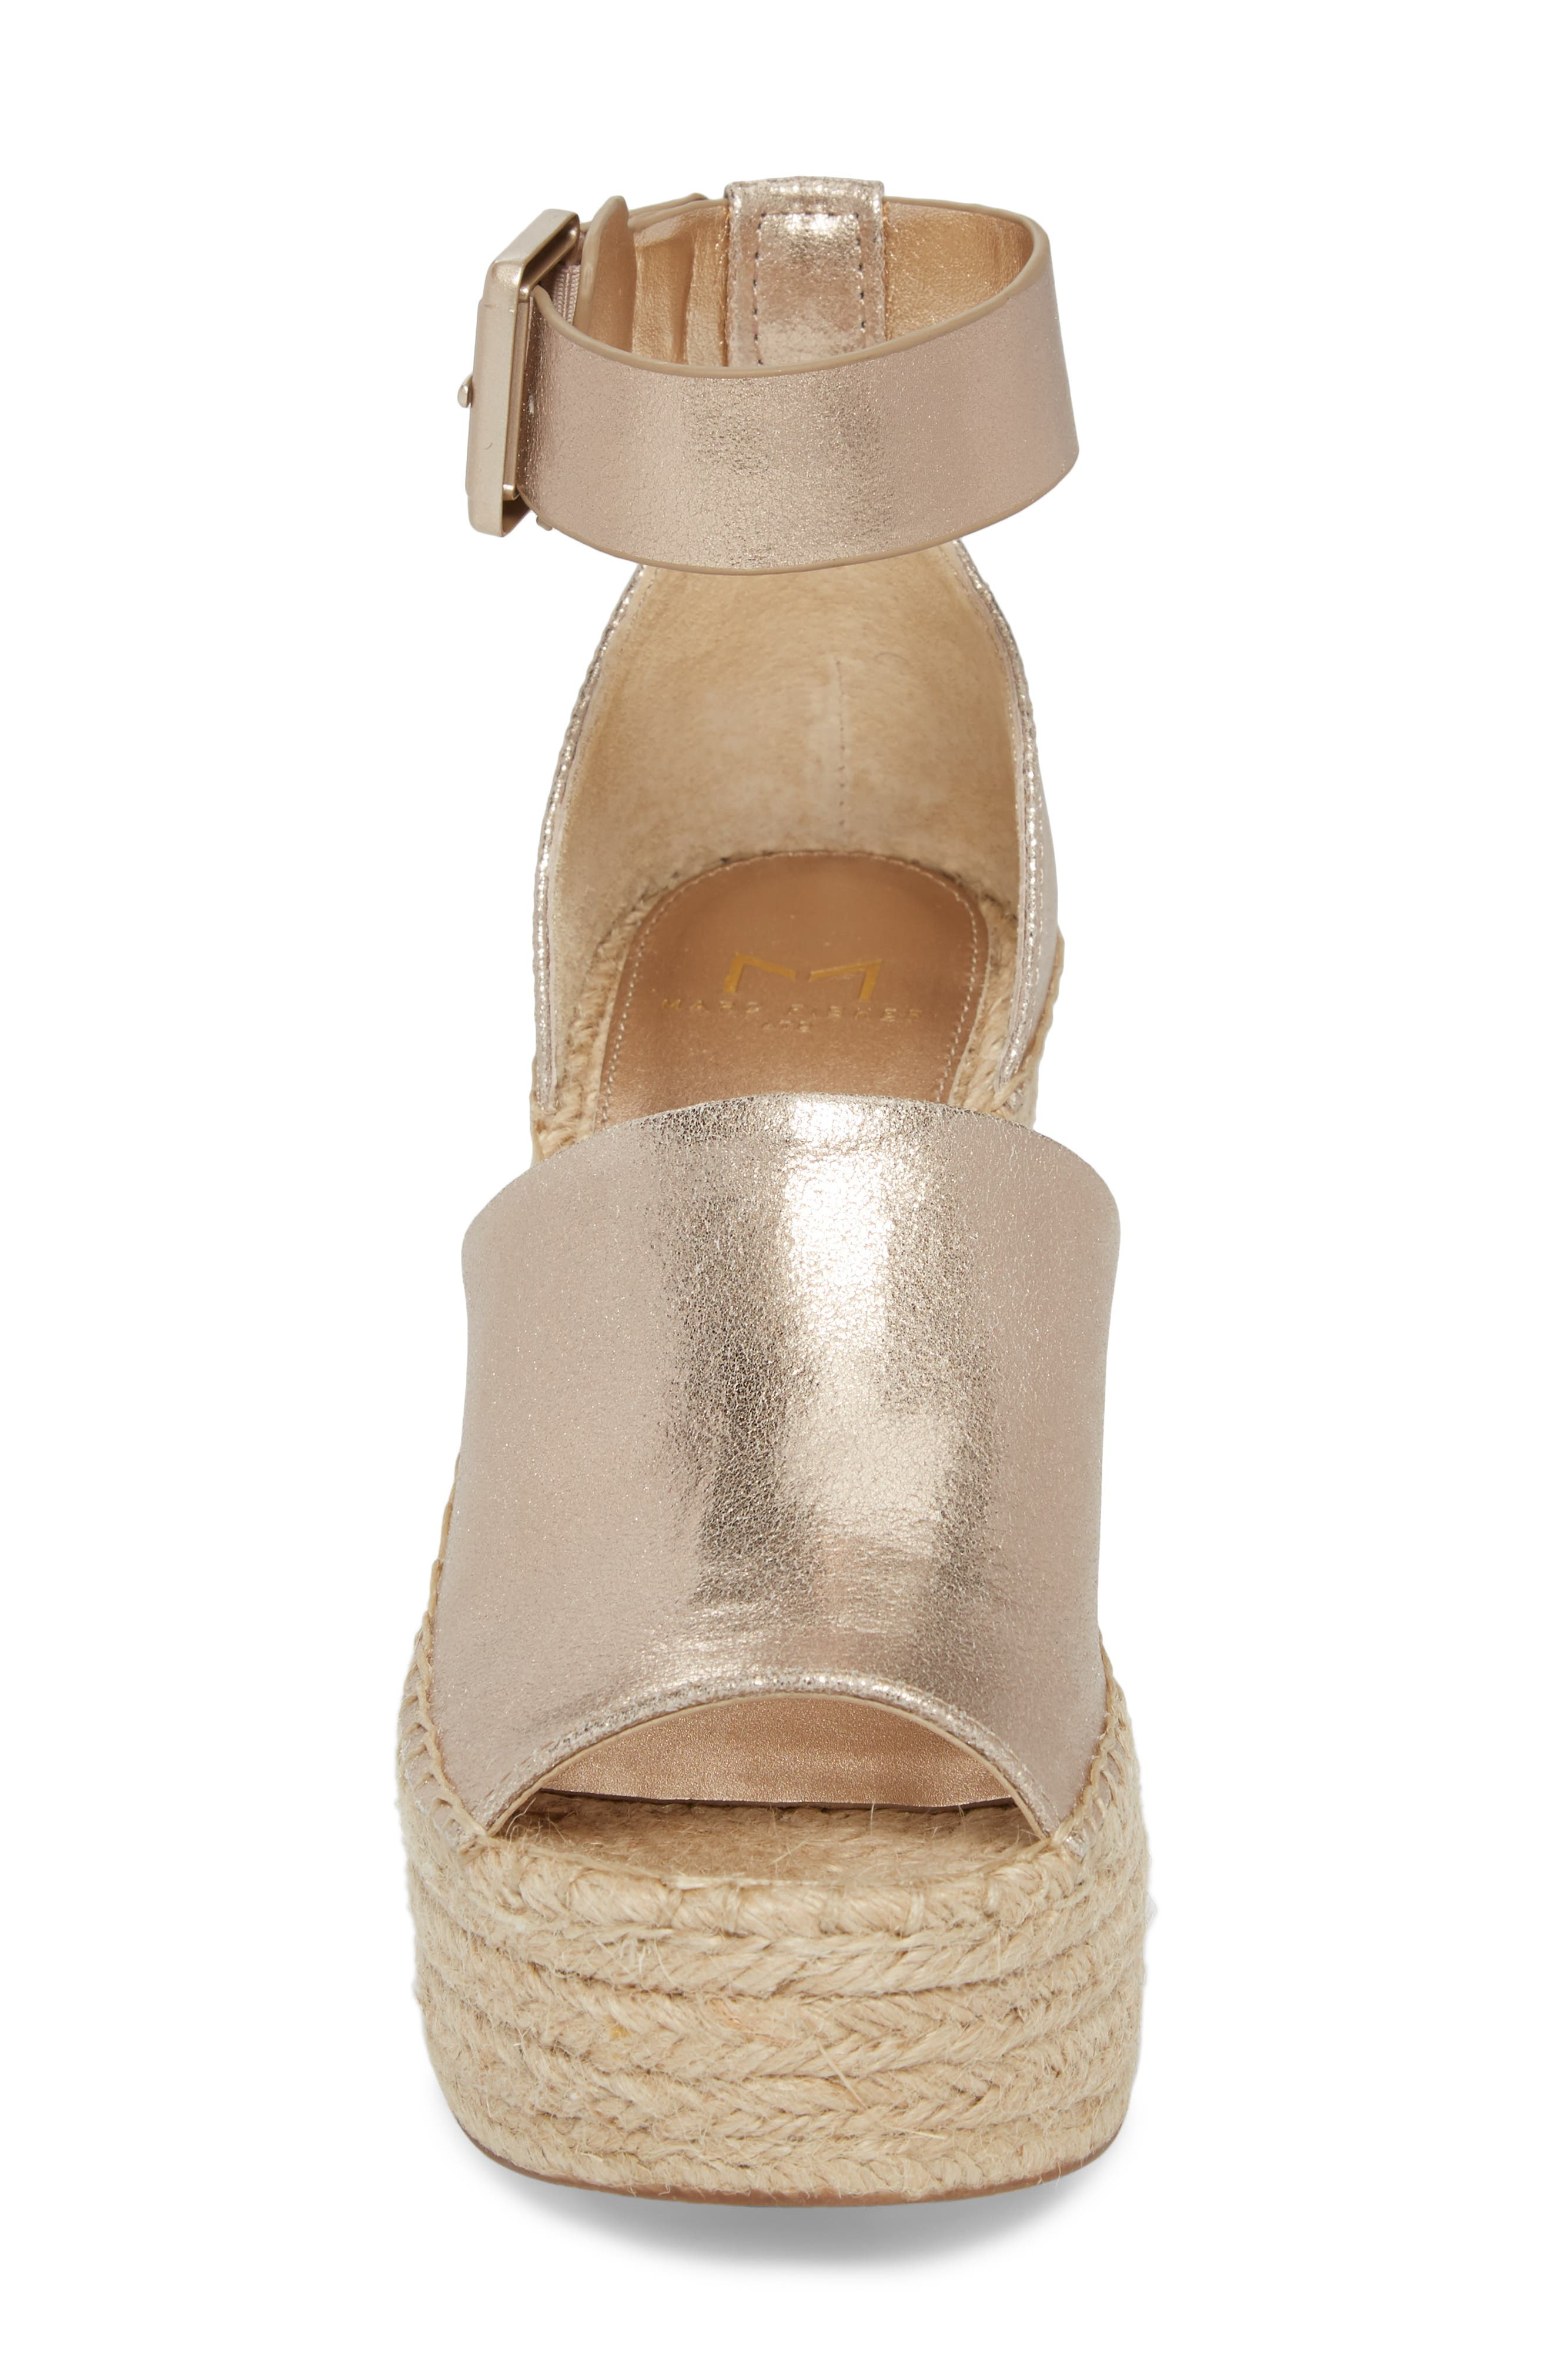 Adalyn Espadrille Wedge Sandal,                             Alternate thumbnail 4, color,                             Gold Leather